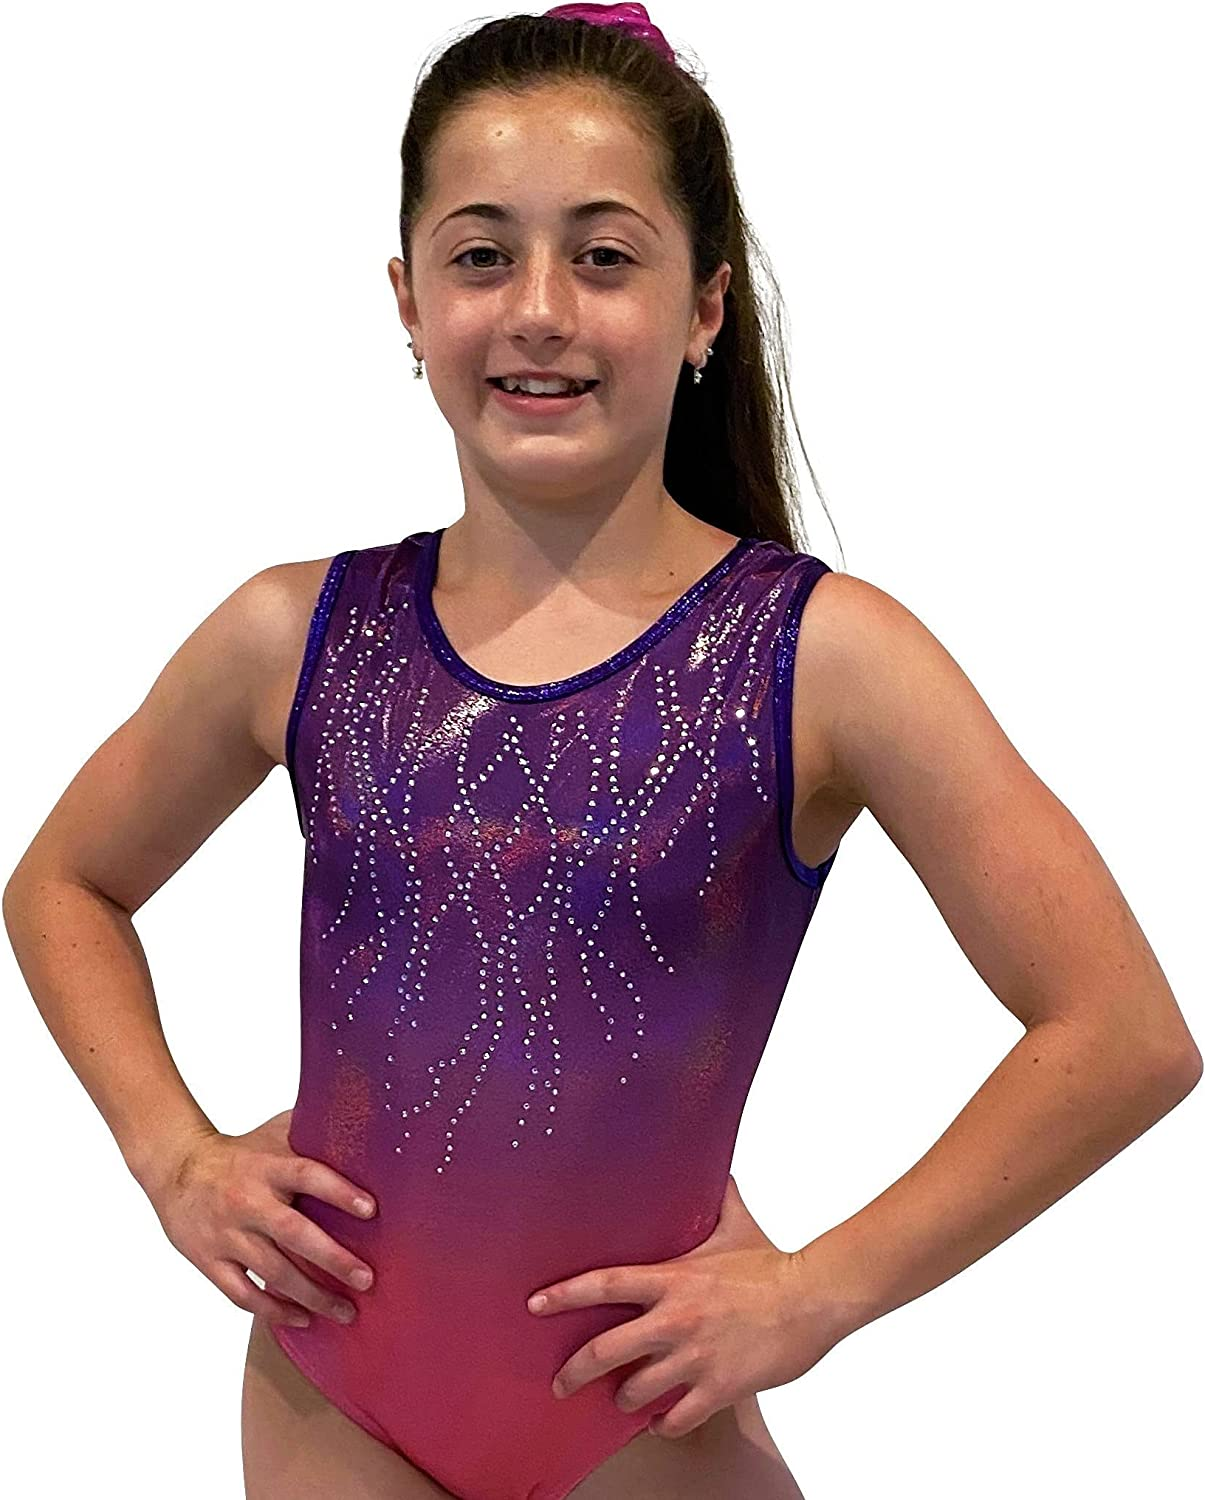 LIL'FOX Gymnastics New color Leotards for Girls SHINY - OMBRE GALAXY Ranking TOP19 FOIL